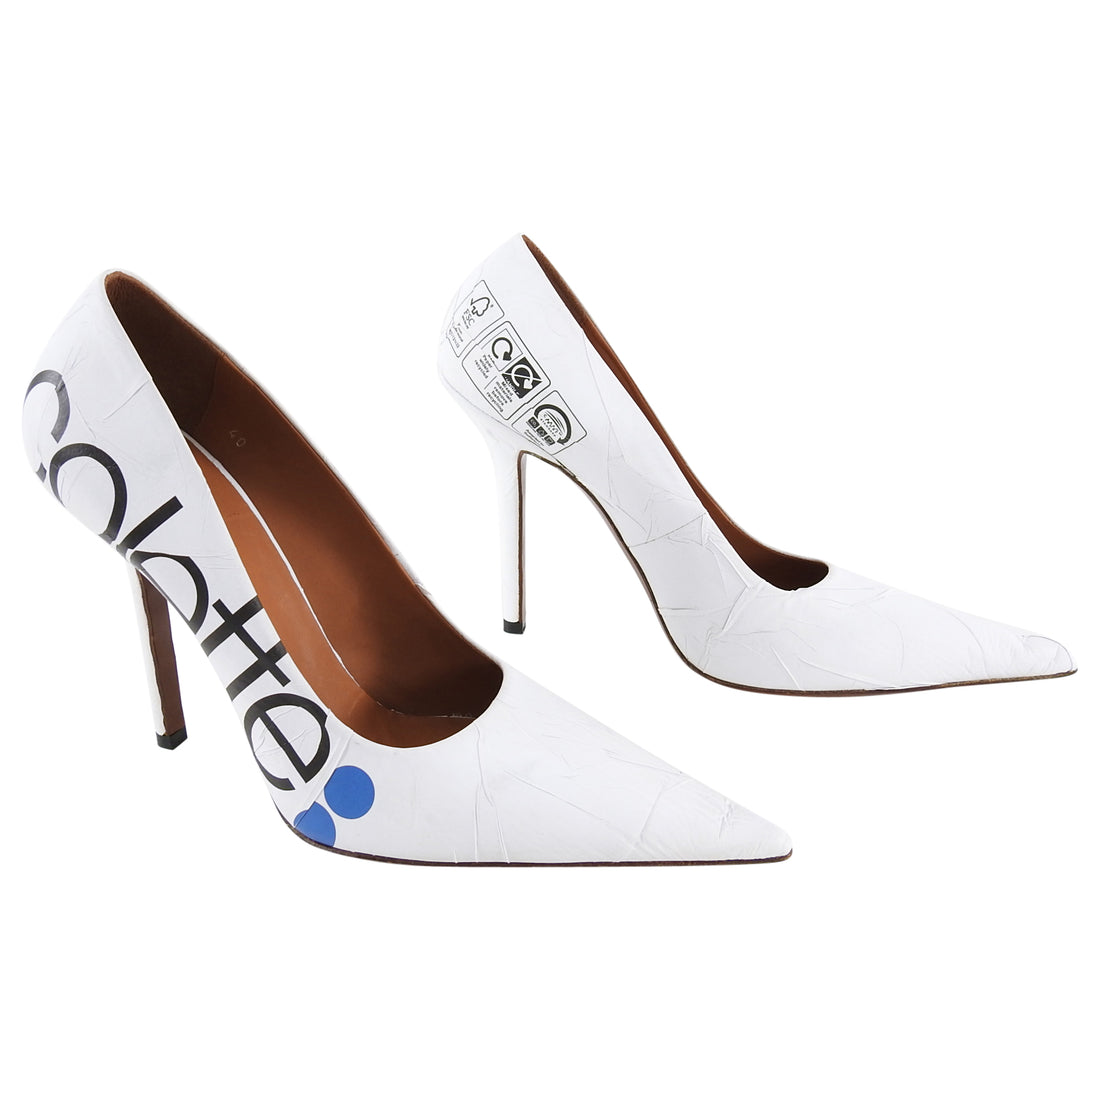 Vetements Colette White Pointy Toe Pumps Heels - 40